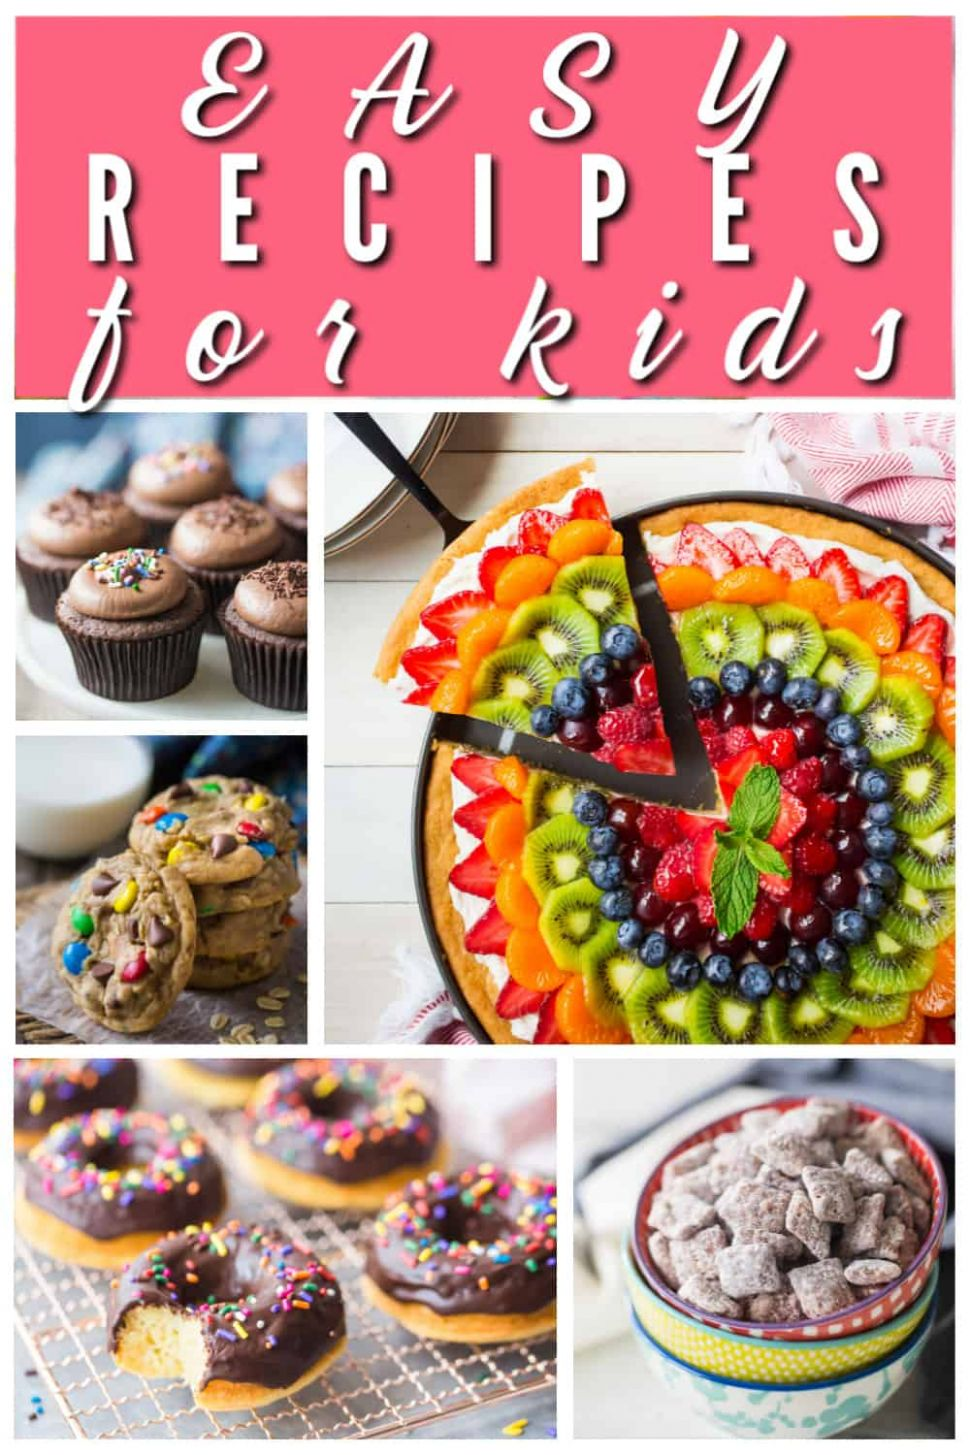 Easy Recipes for Kids: Yummy & fun treats to make! -Baking a Moment - Easy Recipes For Kids